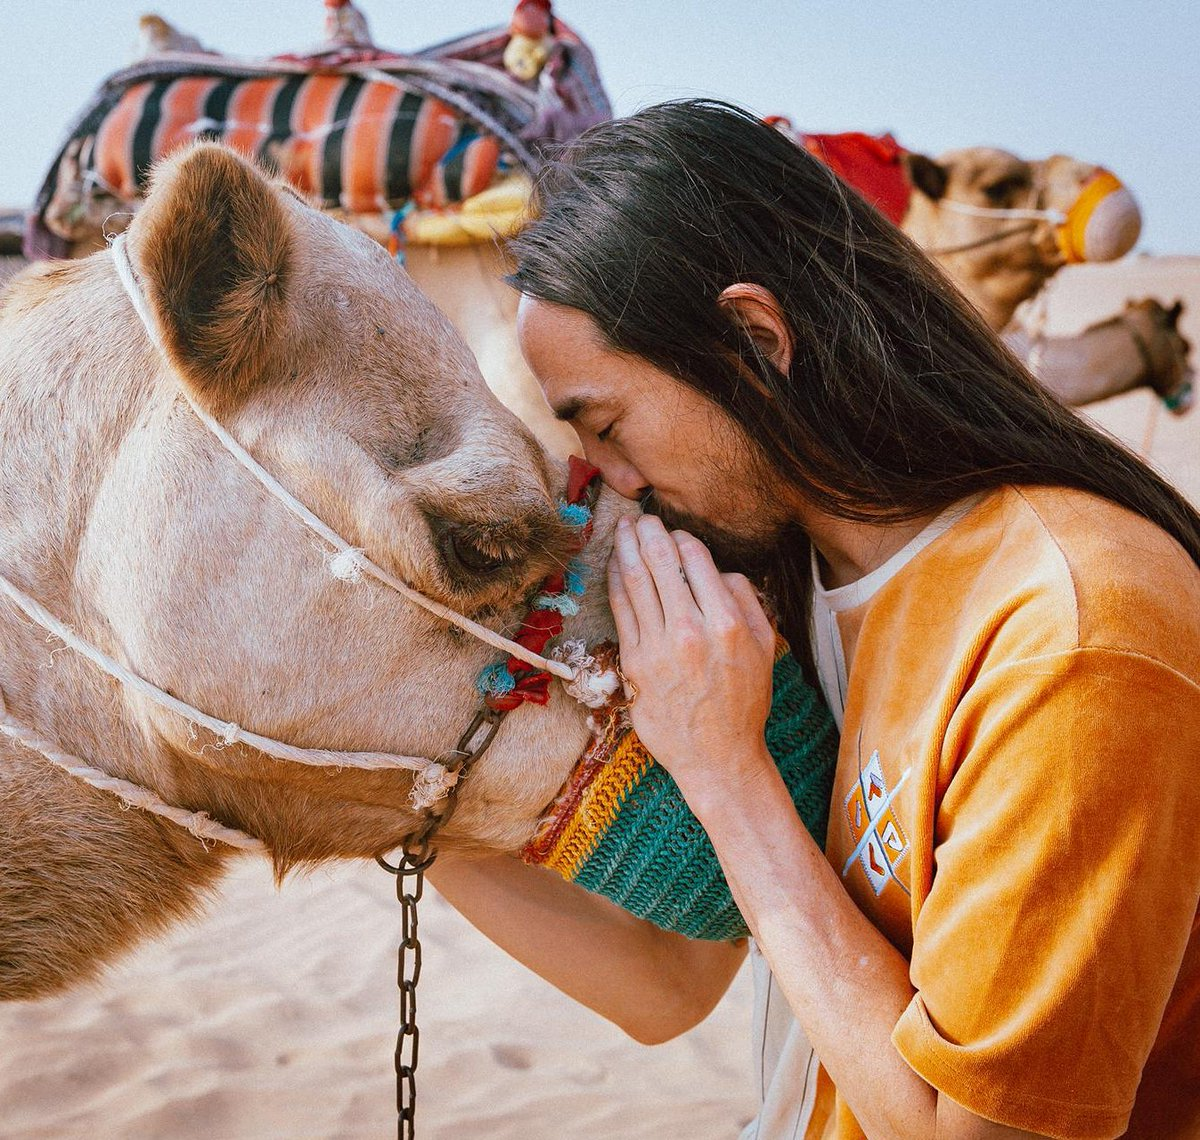 *adds fluent in camel* to my resume*